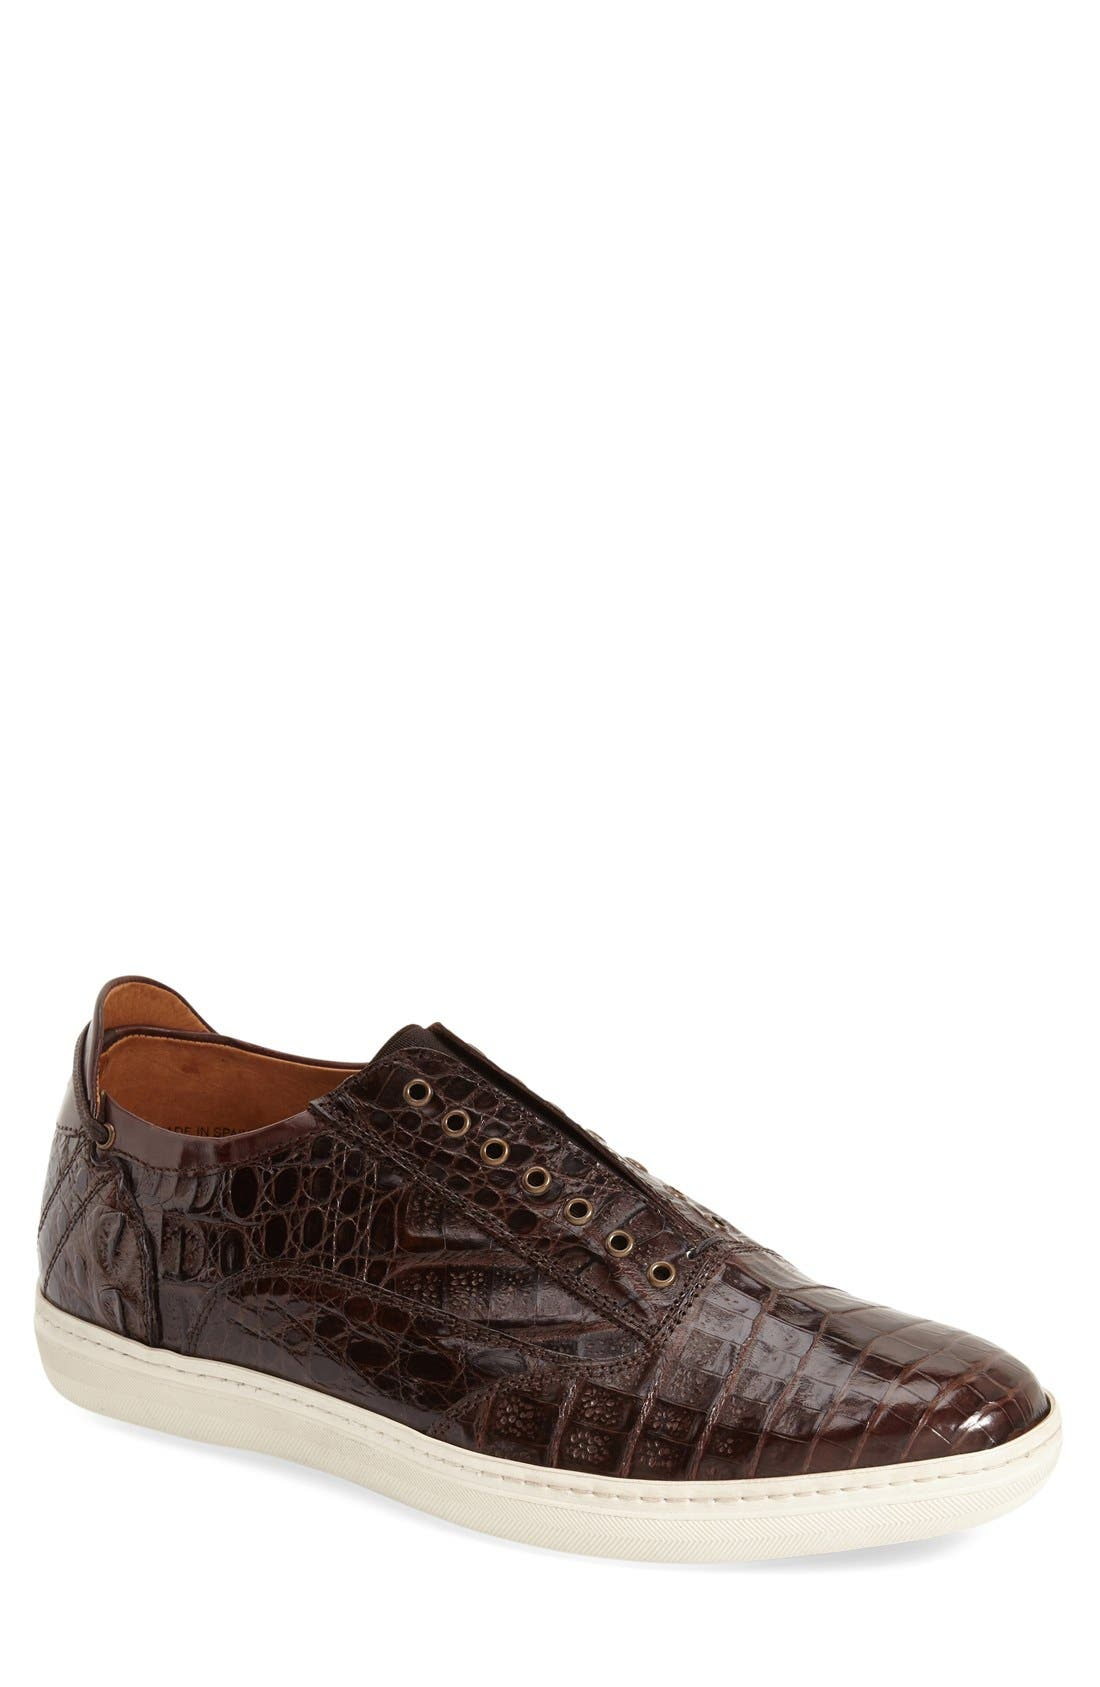 'Emmanuel' Slip-on Sneaker,                             Main thumbnail 1, color,                             Brown Crocodile